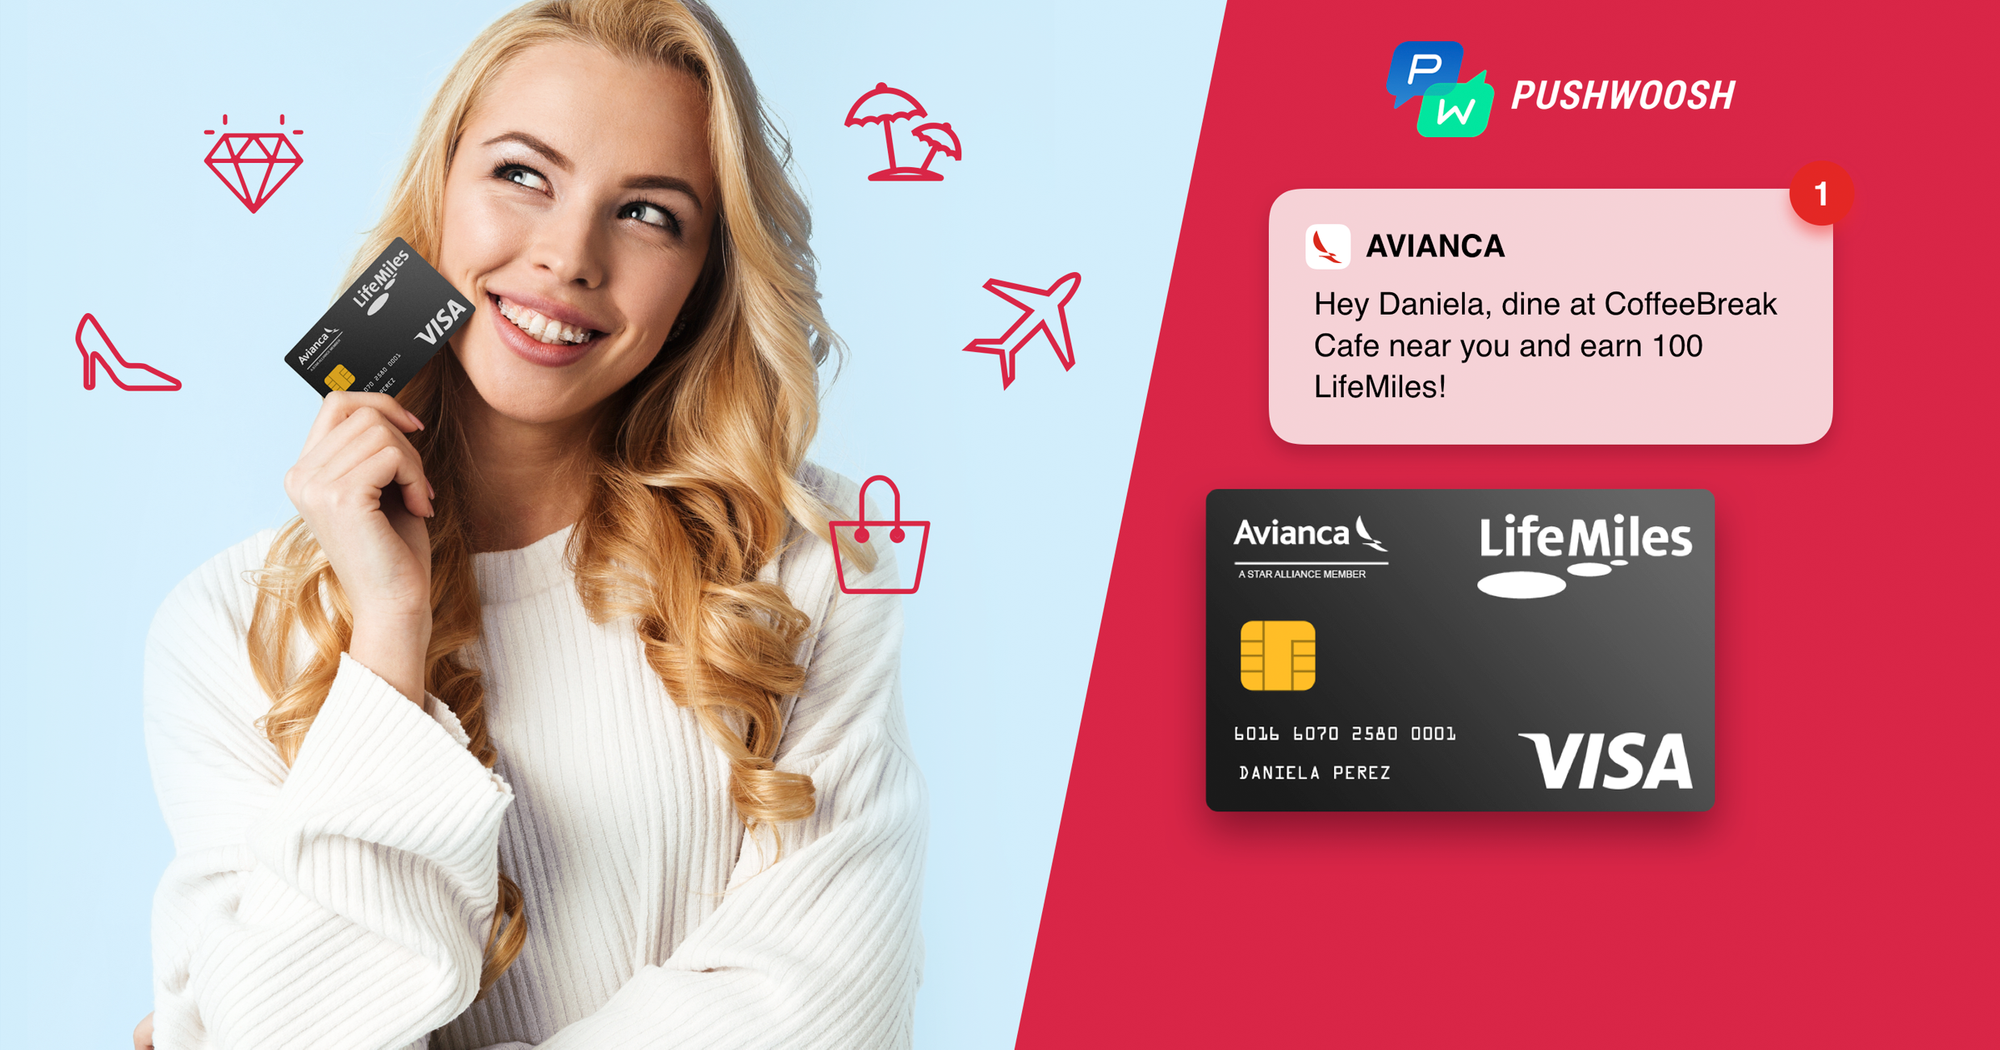 Lifemiles Inc. automates its loyalty program with Pushwoosh Geozones